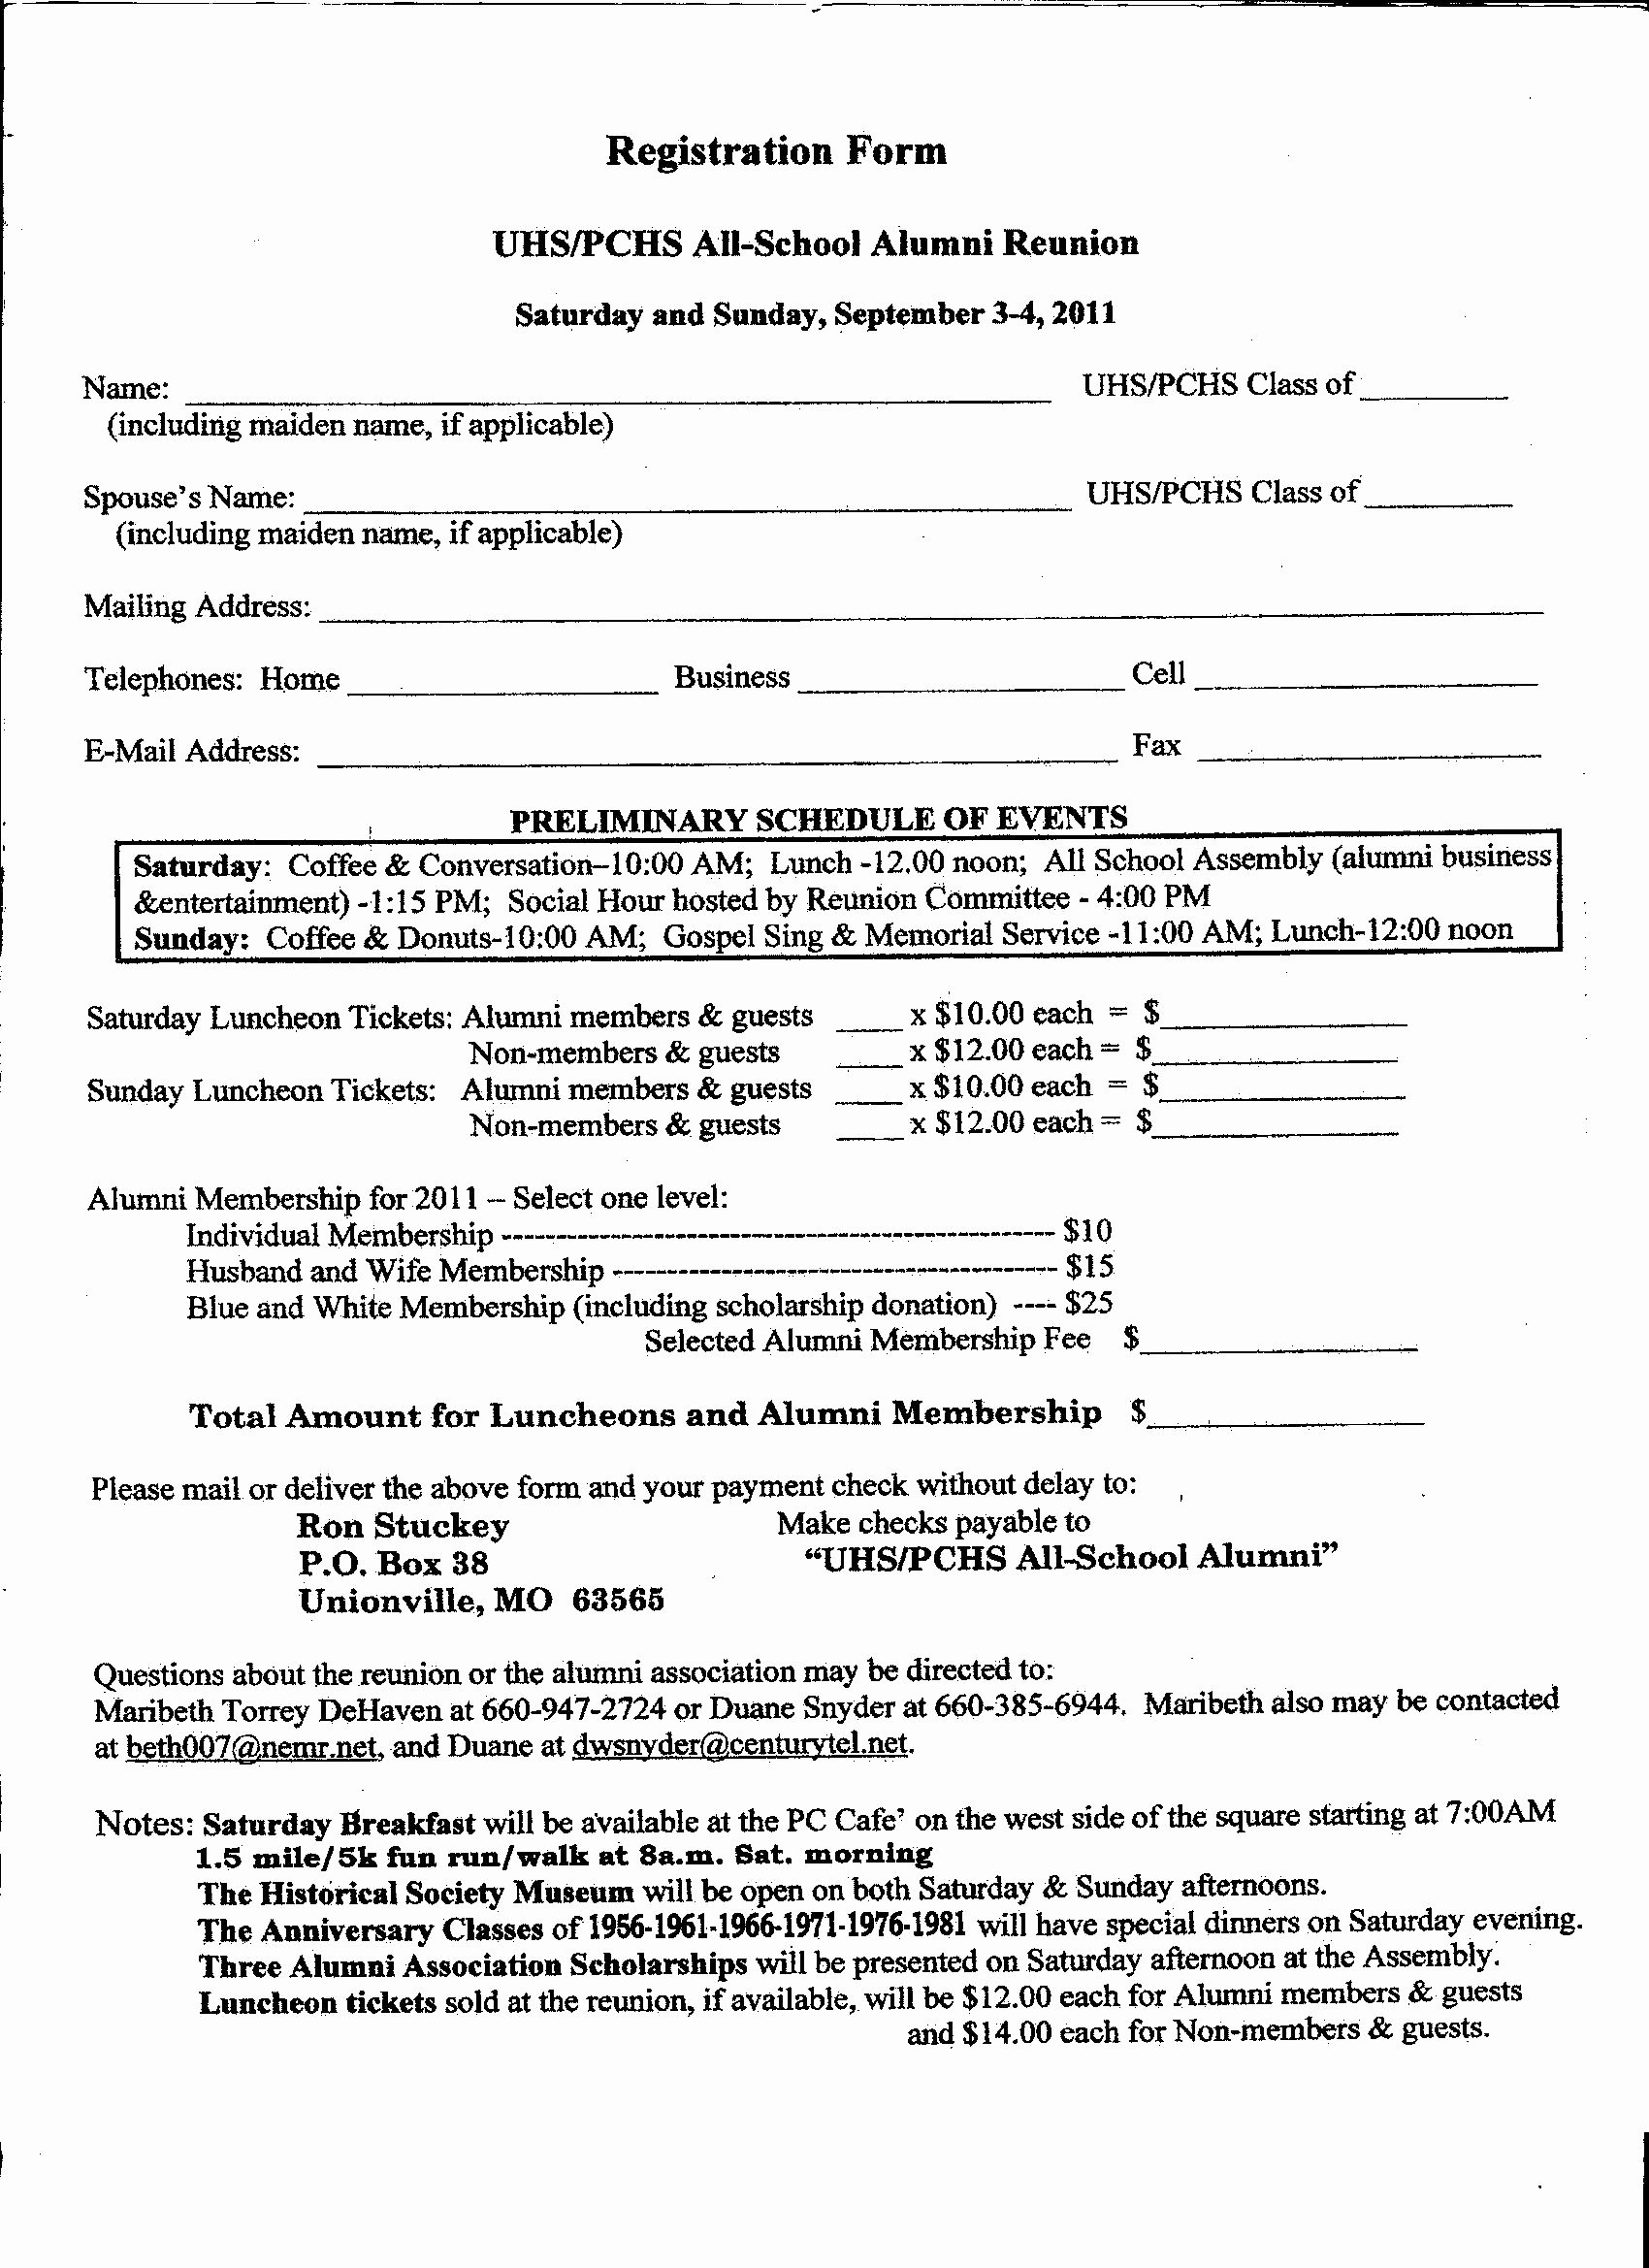 School Registration form Template Awesome School Registration form Template Portablegasgrillweber